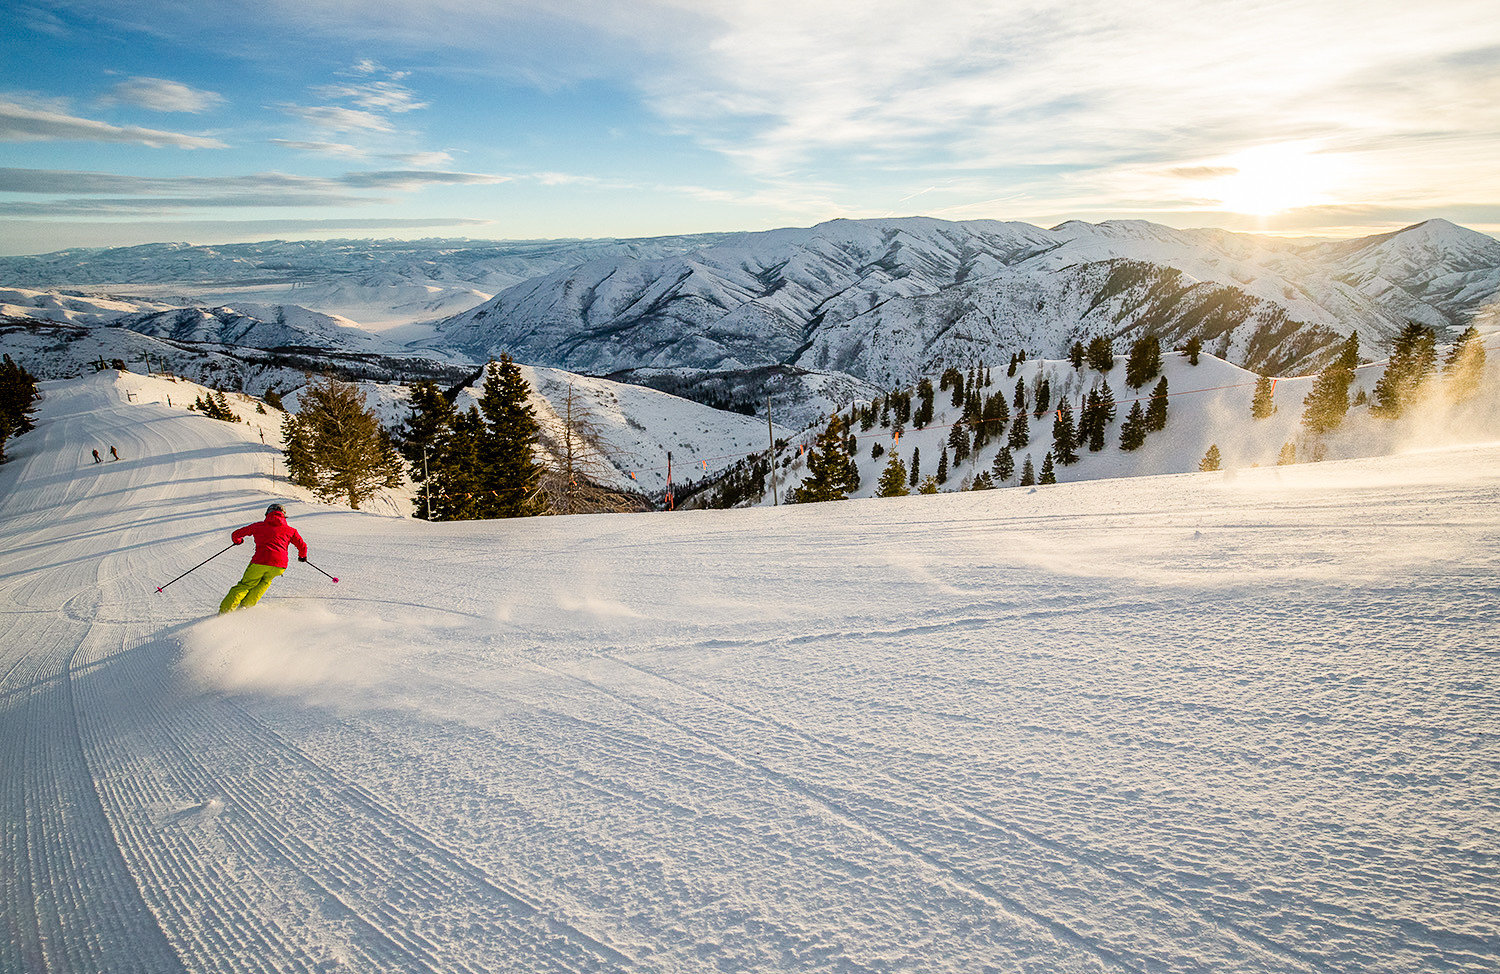 Trip Ideas snow sky Nature skiing piste Winter mountain range mountainous landforms Ski mountain geological phenomenon winter sport terrain ridge slope alps glacial landform freezing cloud nordic skiing ski equipment fell ski cross landscape cross country skiing arctic hill ski touring massif tree highland